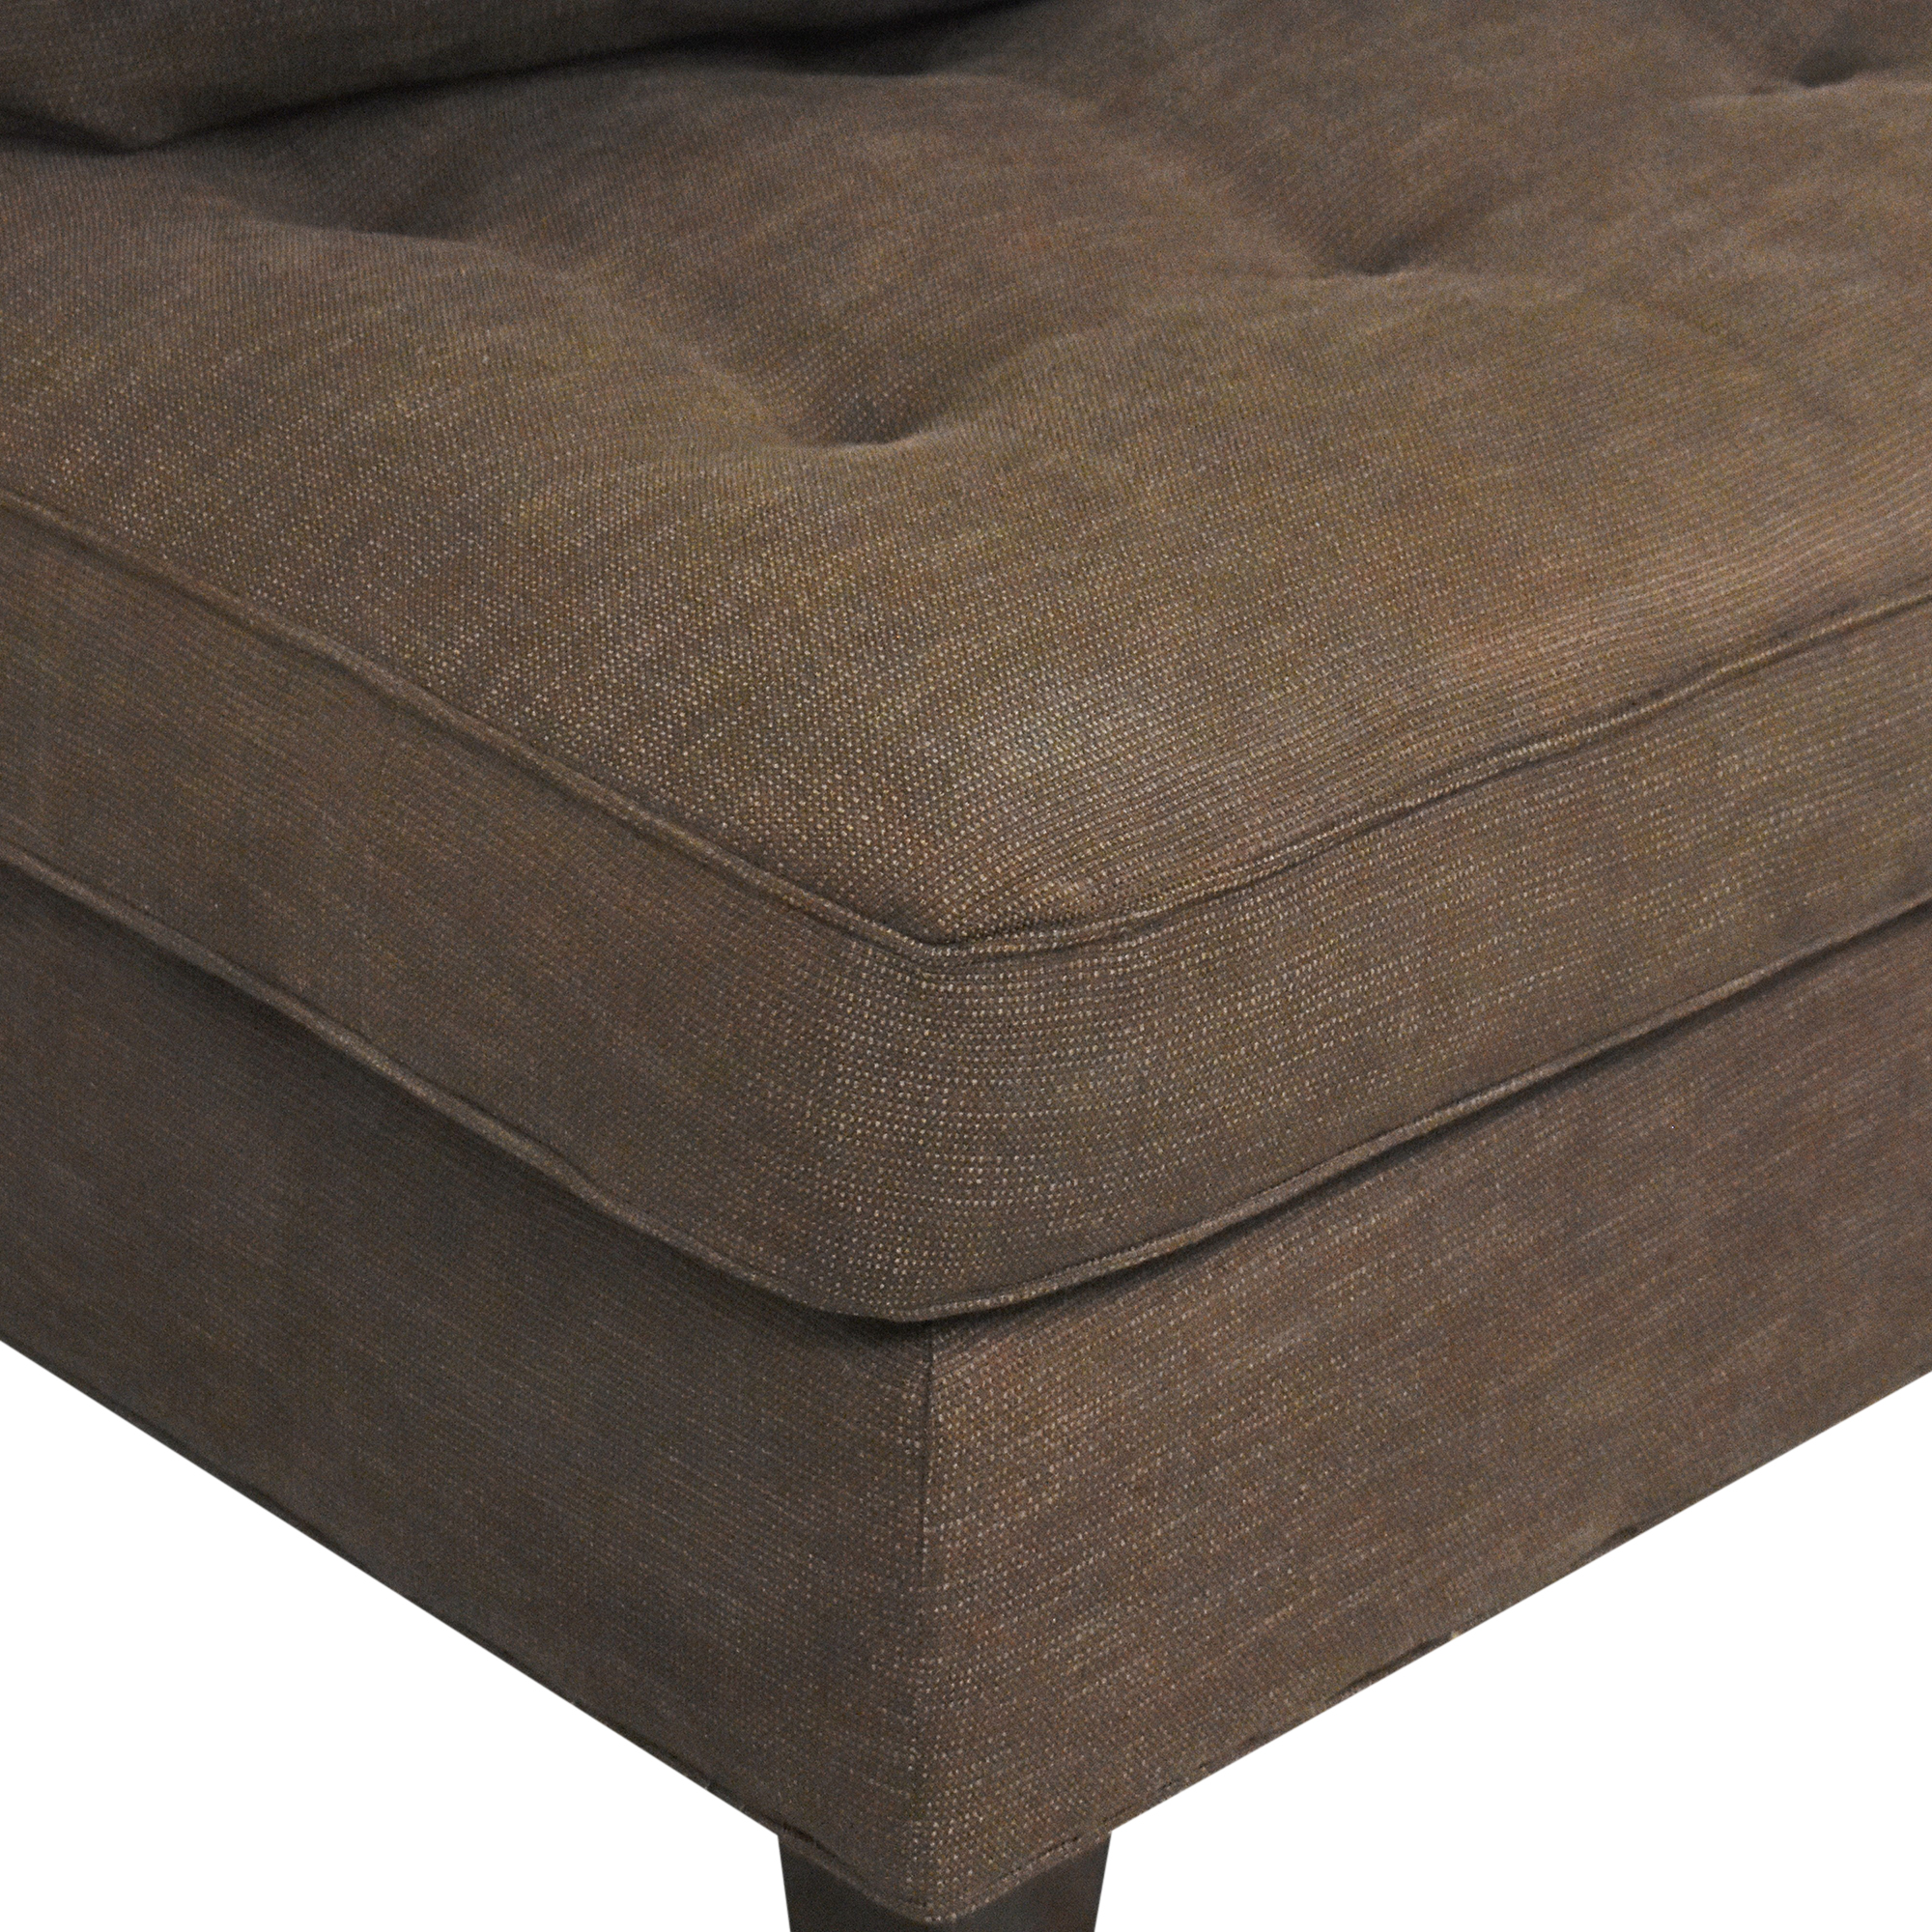 buy Pottery Barn Pottery Barn Sectional Sofa with Chaise online